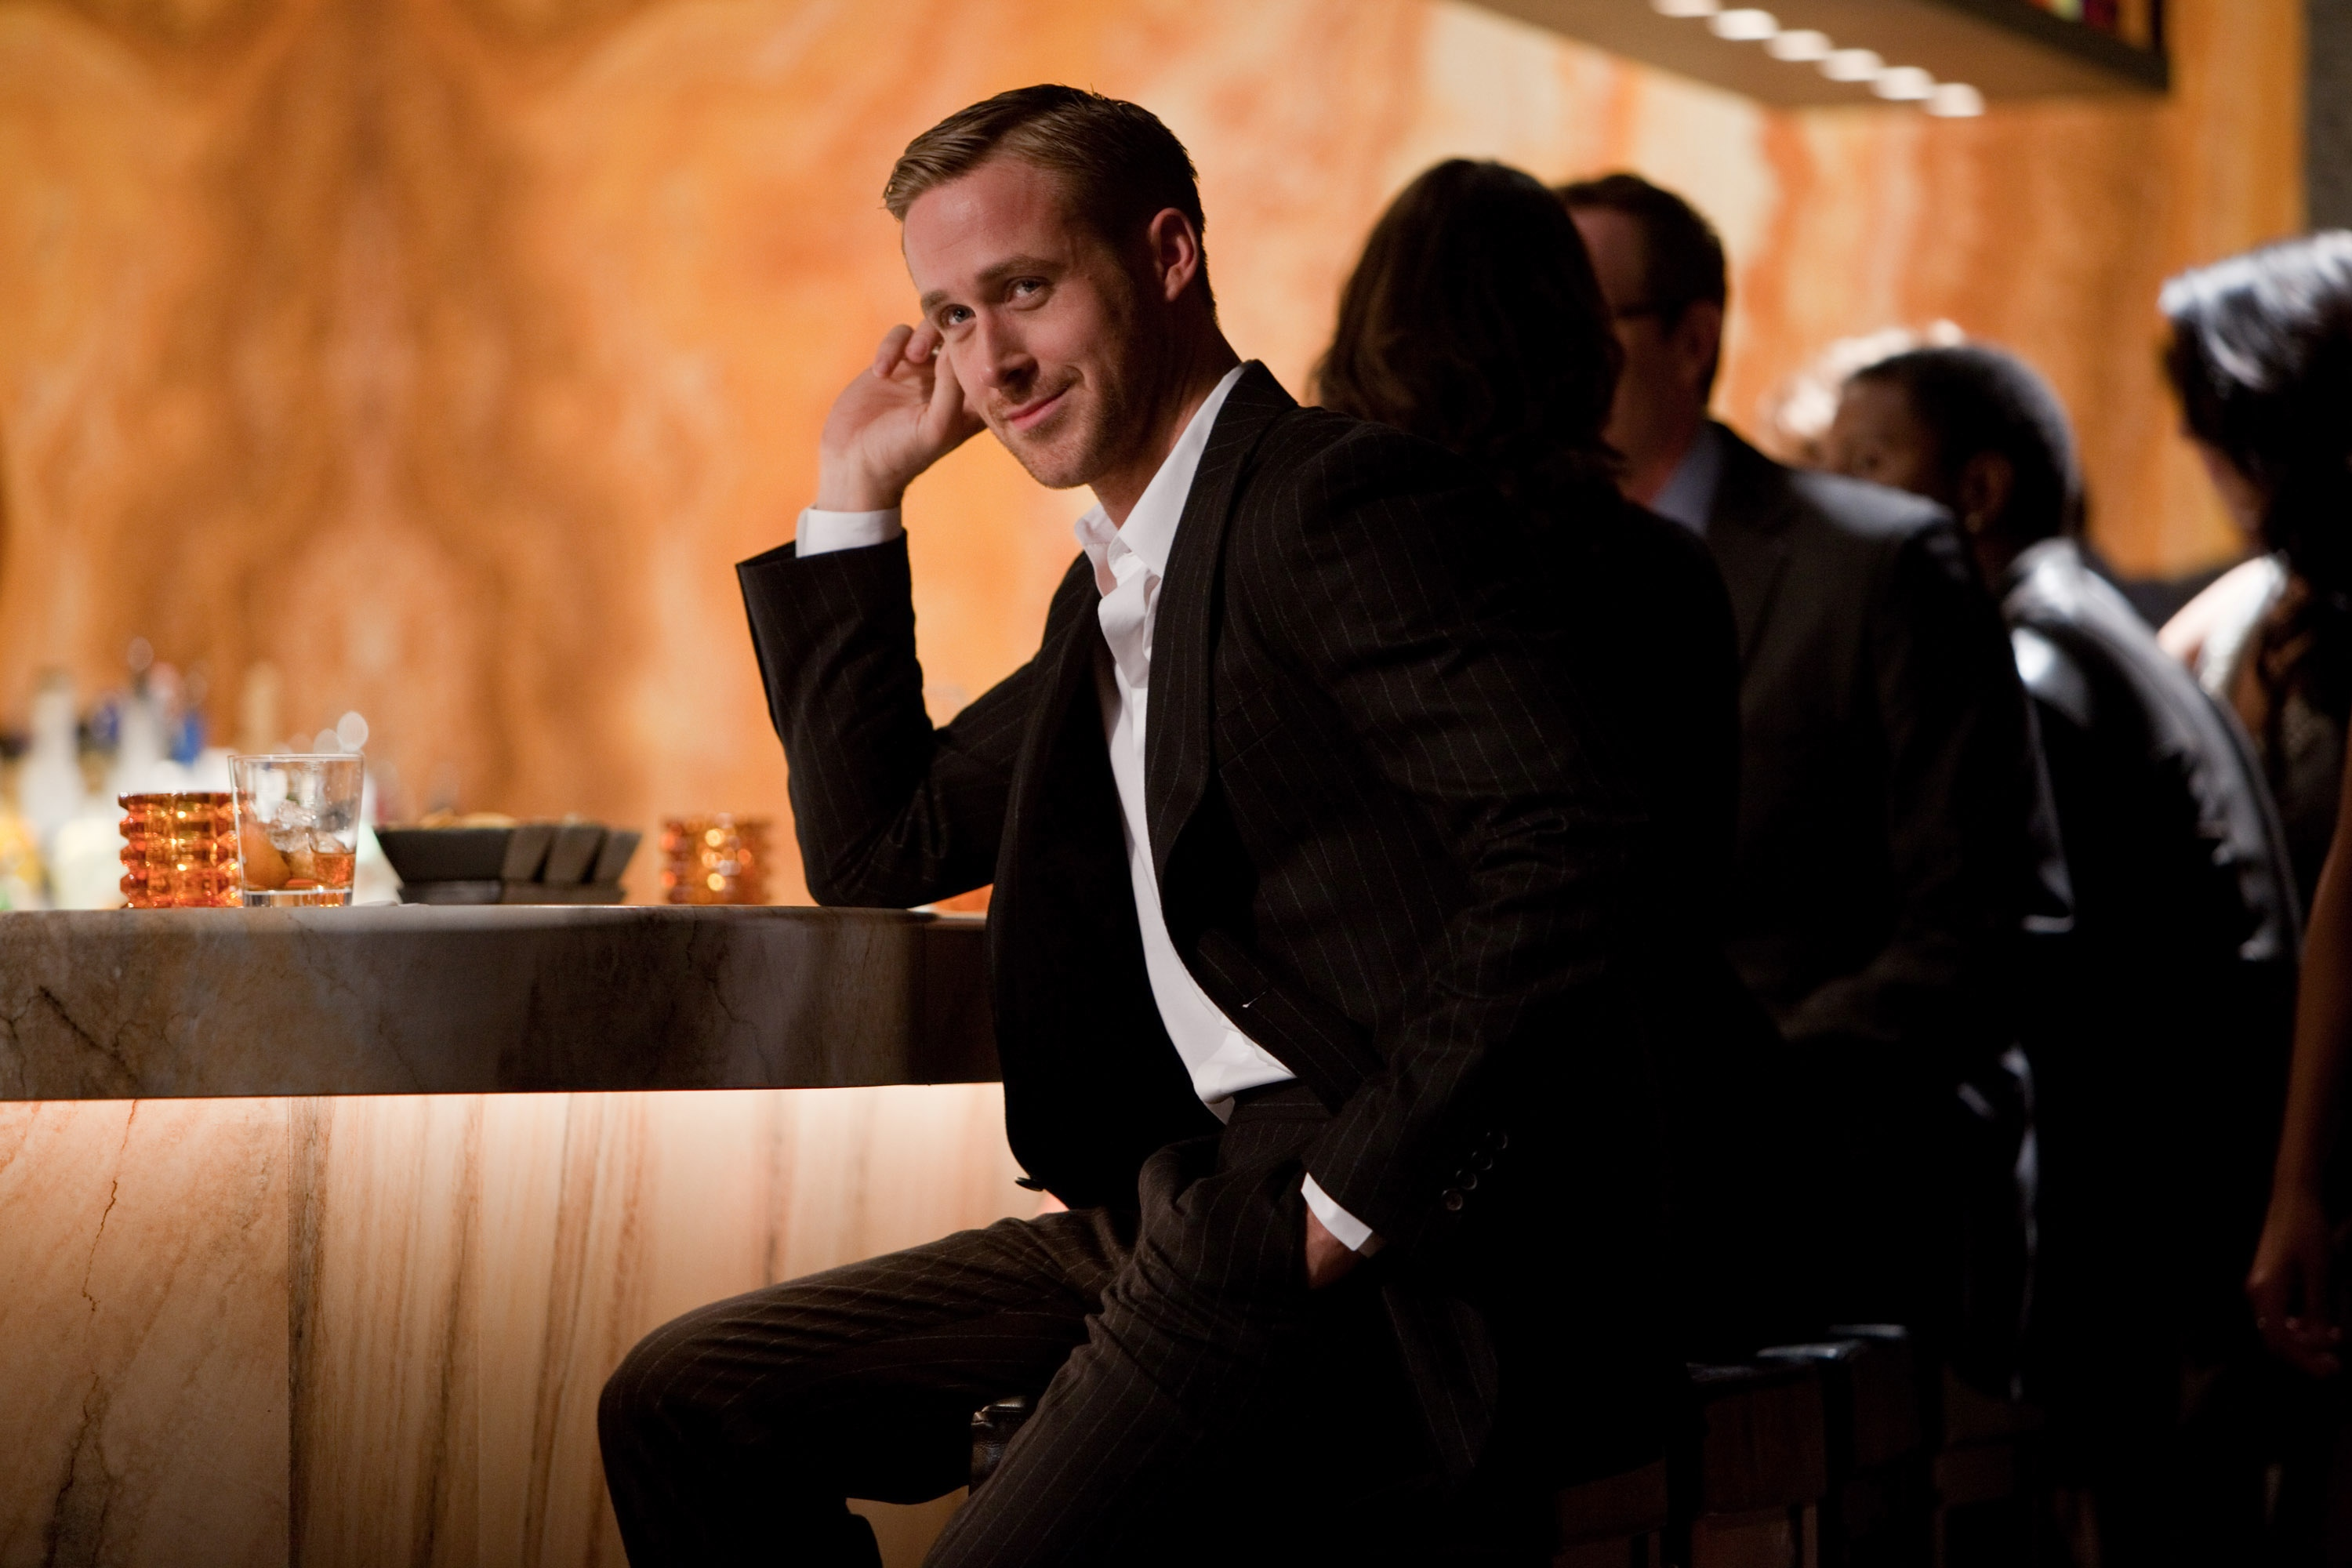 """RYAN GOSLING as Jacob in Warner Bros. Pictures' comedy """"CRAZY, STUPID, LOVE."""" a Warner Bros. Pictures release."""